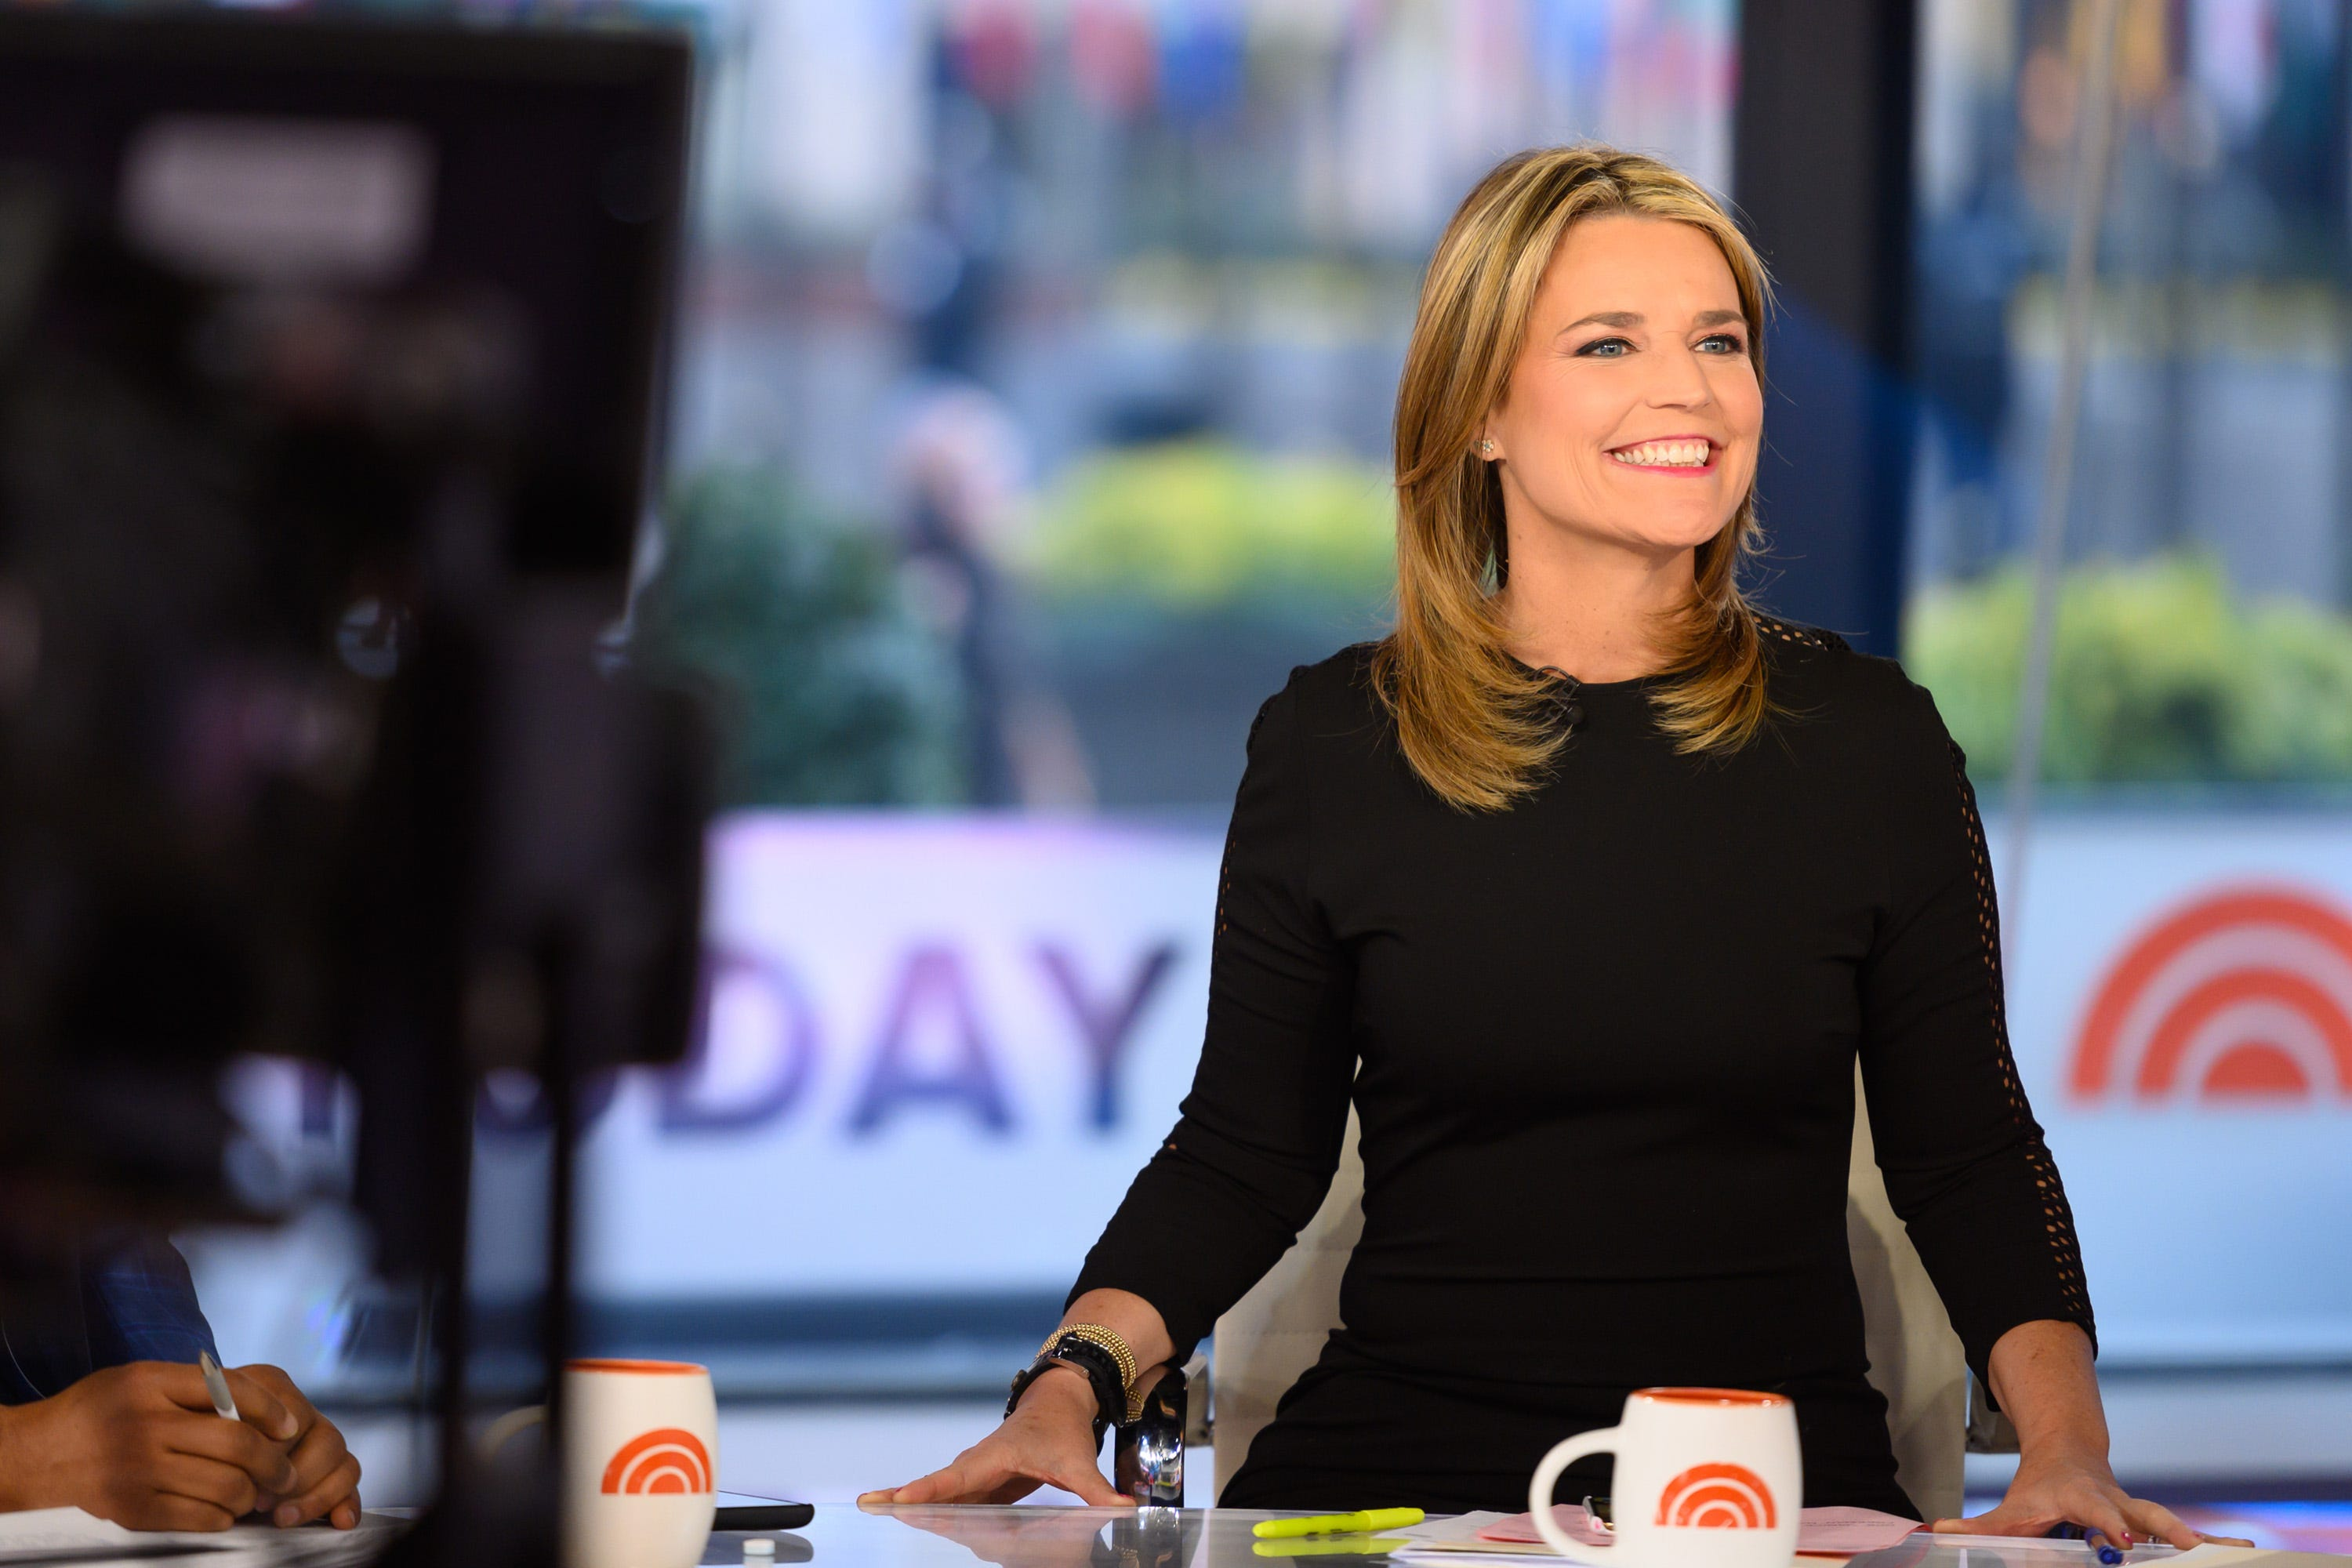 Twitter slams Savannah Guthrie for 'biased' Sarah Huckabee Sanders interview on 'Today'